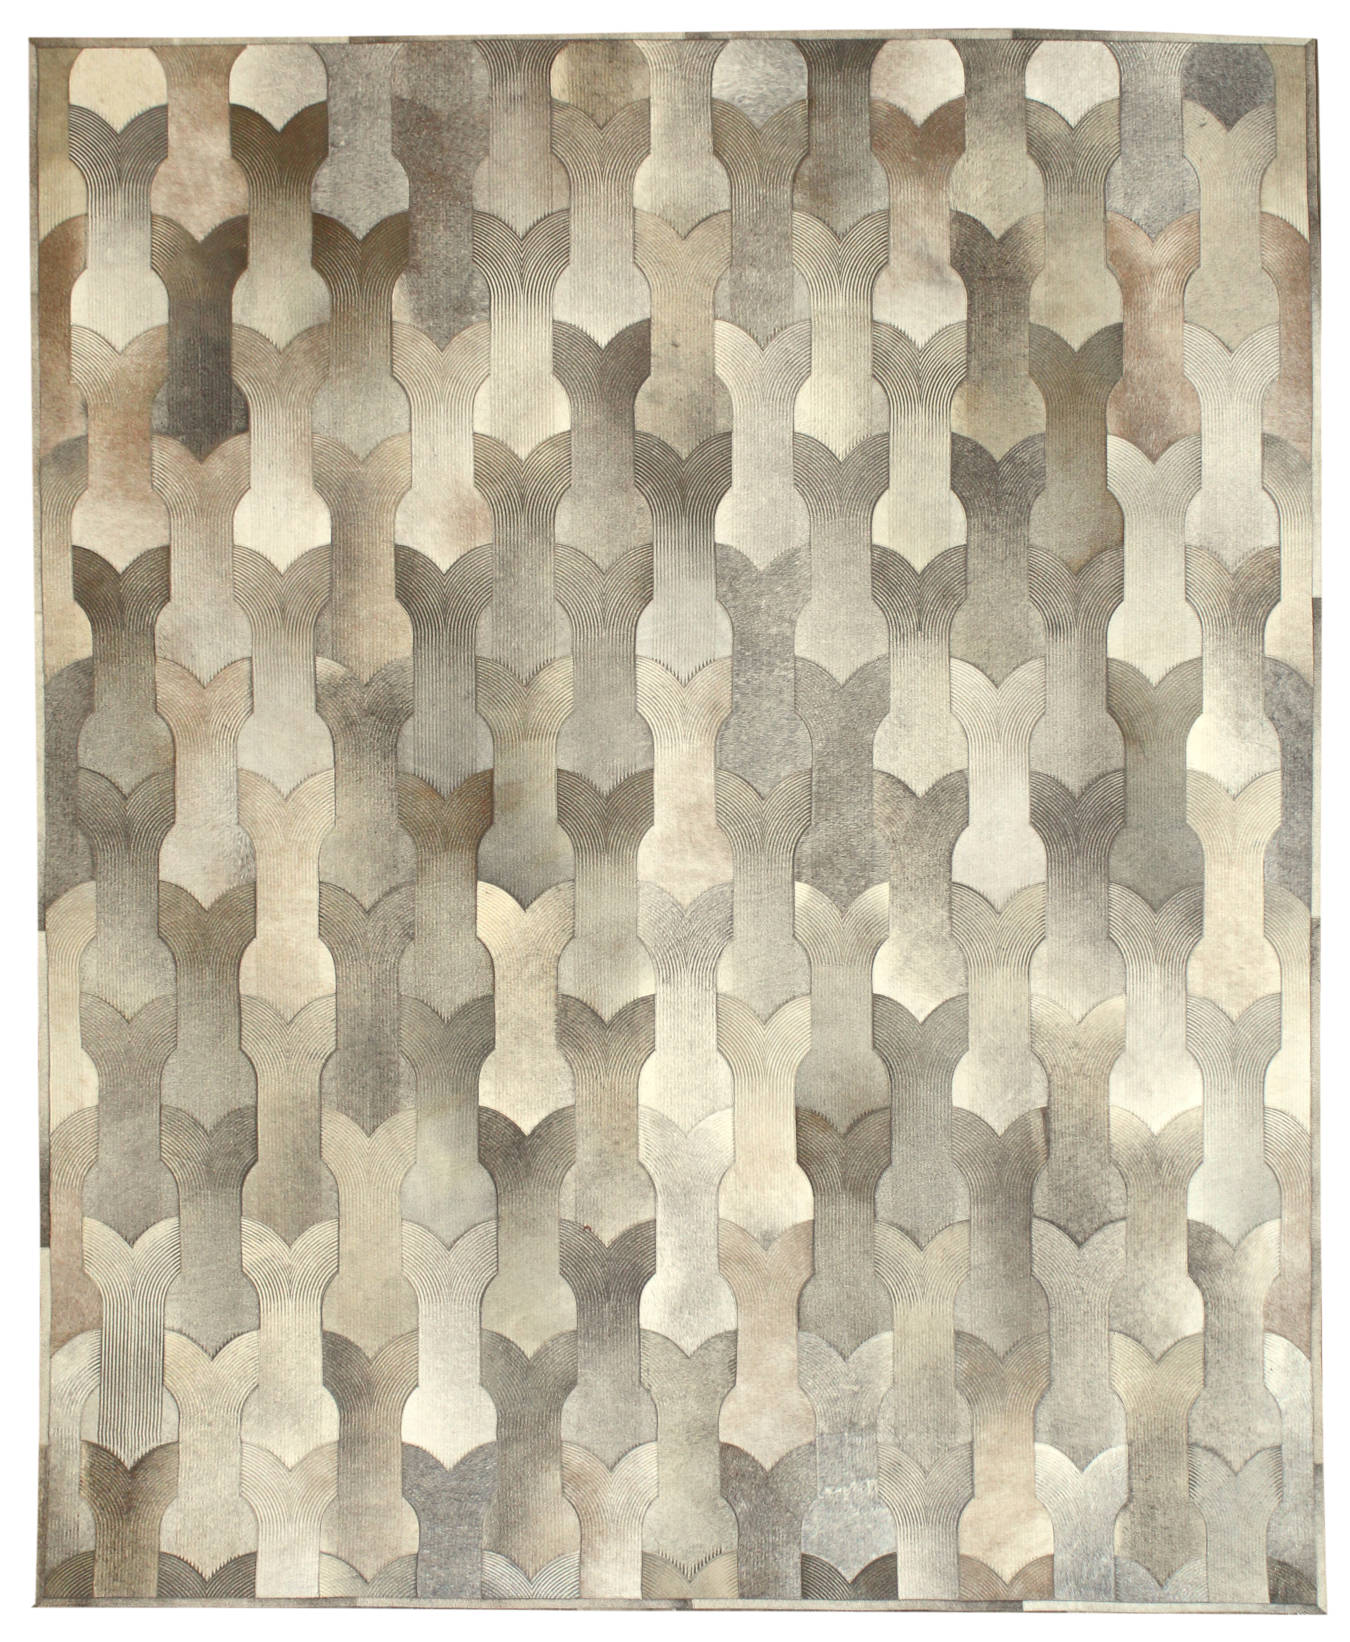 Metropolis Animal Hide Contemporary Rug